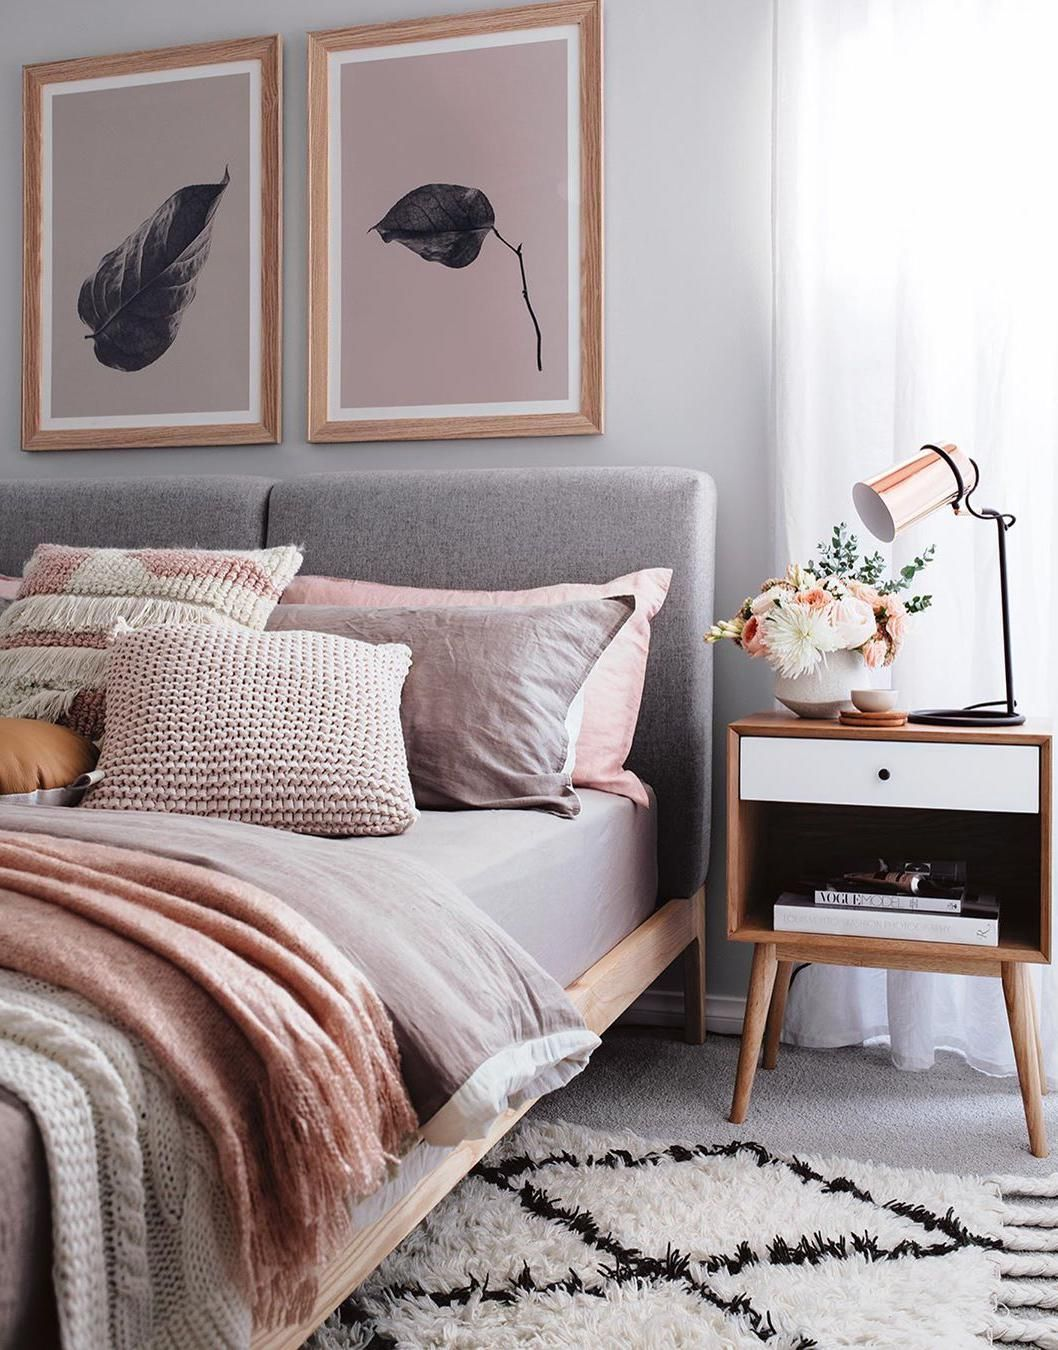 50 Bedroom Decorating Ideas to Suit Every Style | Home decor, Bedroom  decor, Bedroom design